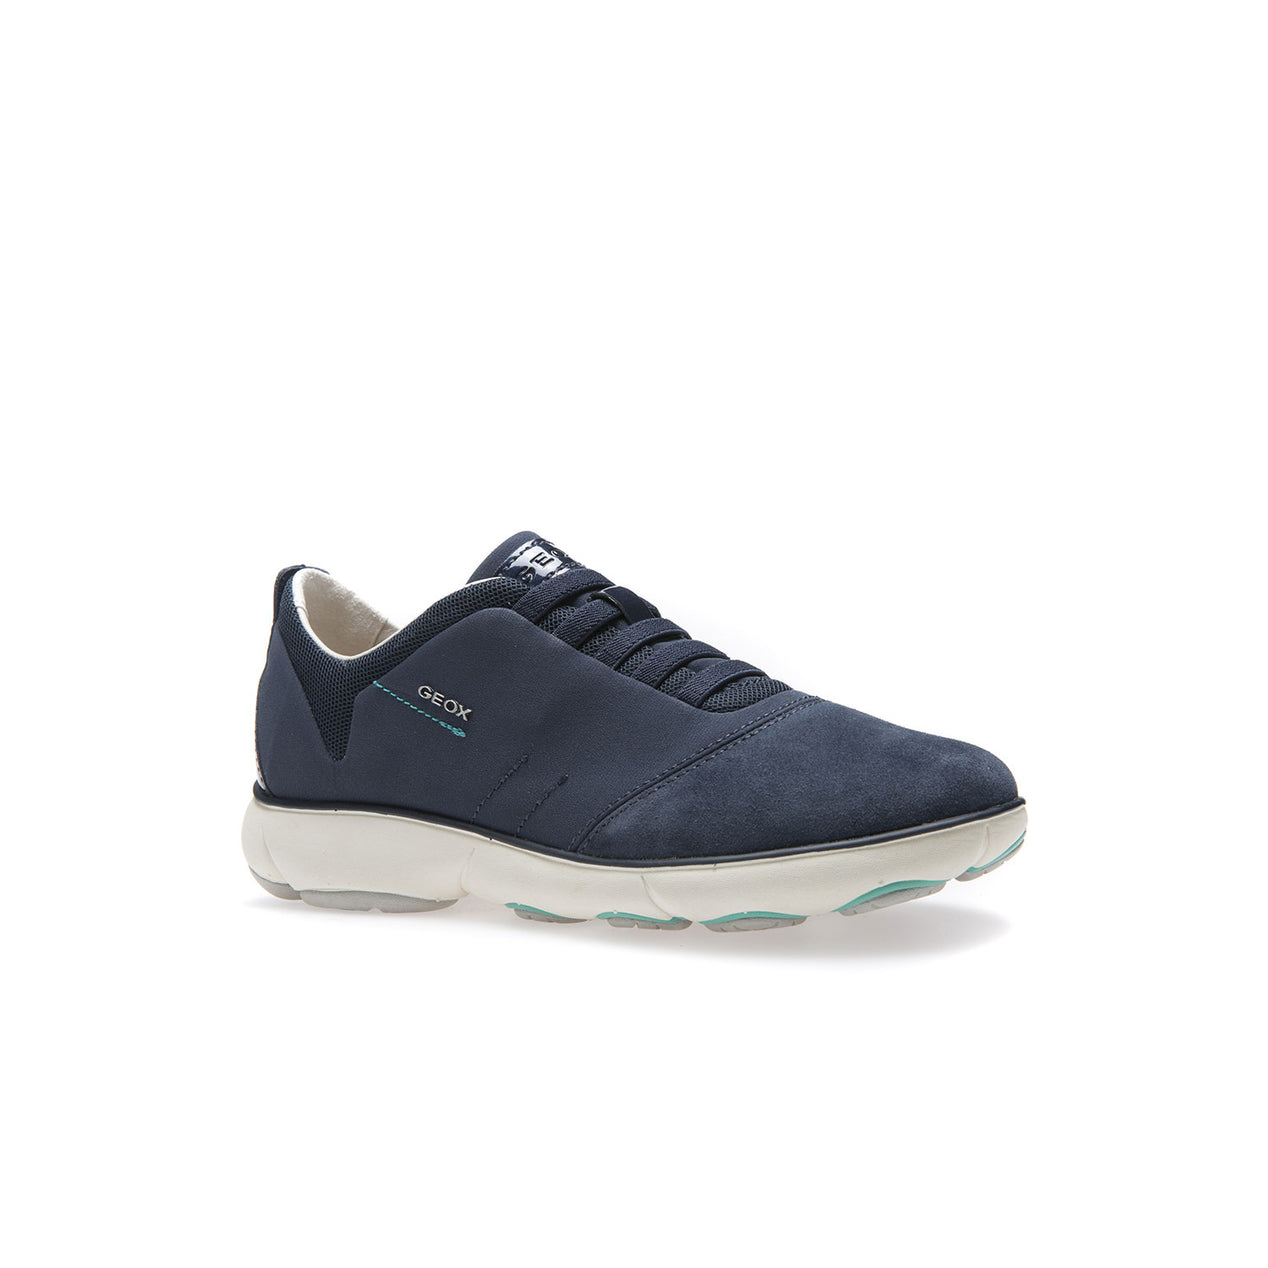 Geox Chaussures sport Nebula Homme